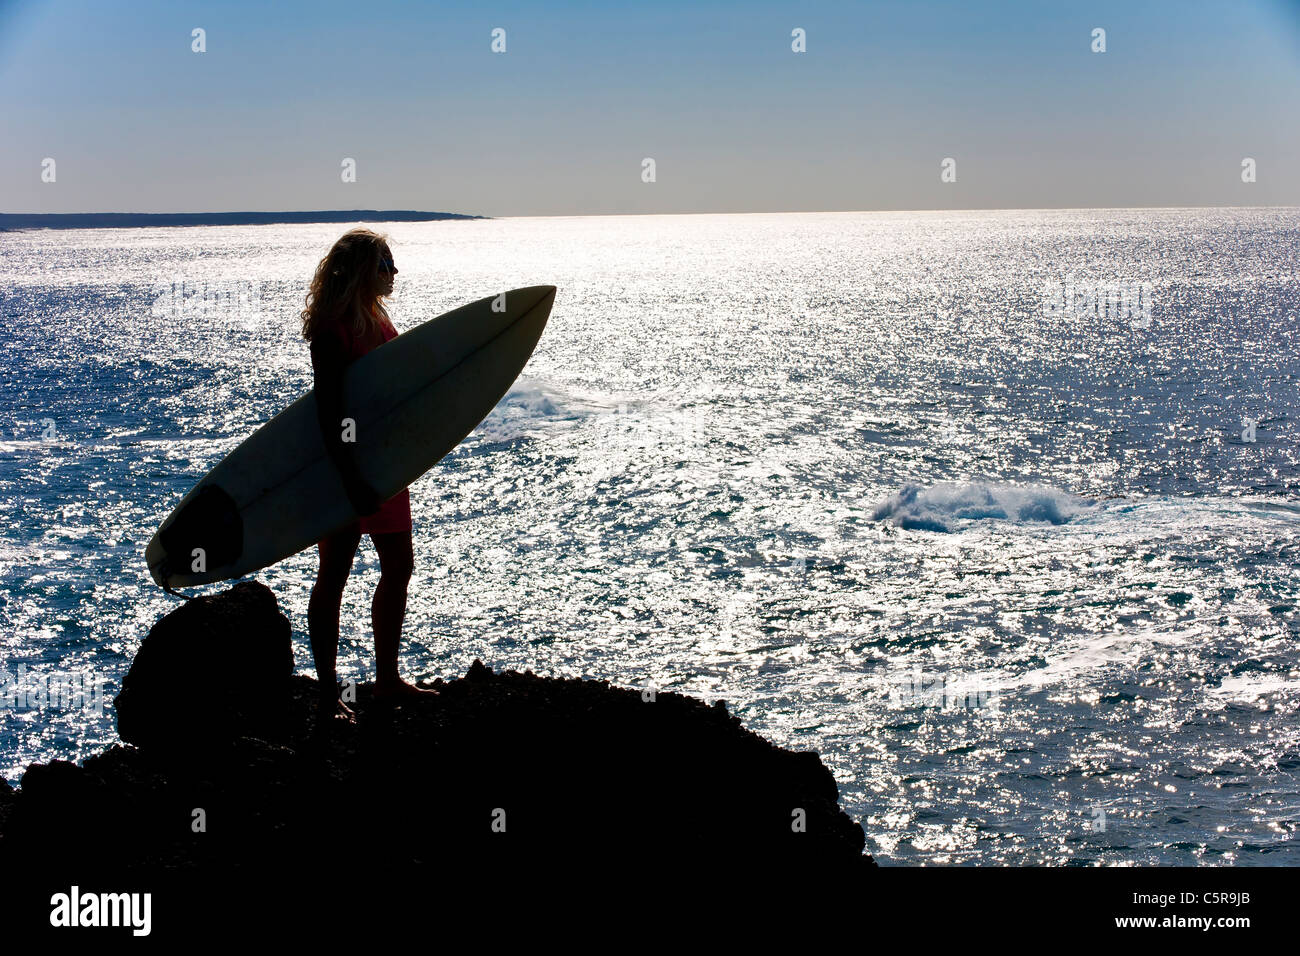 A surfer looks out over the shimmering ocean - Stock Image